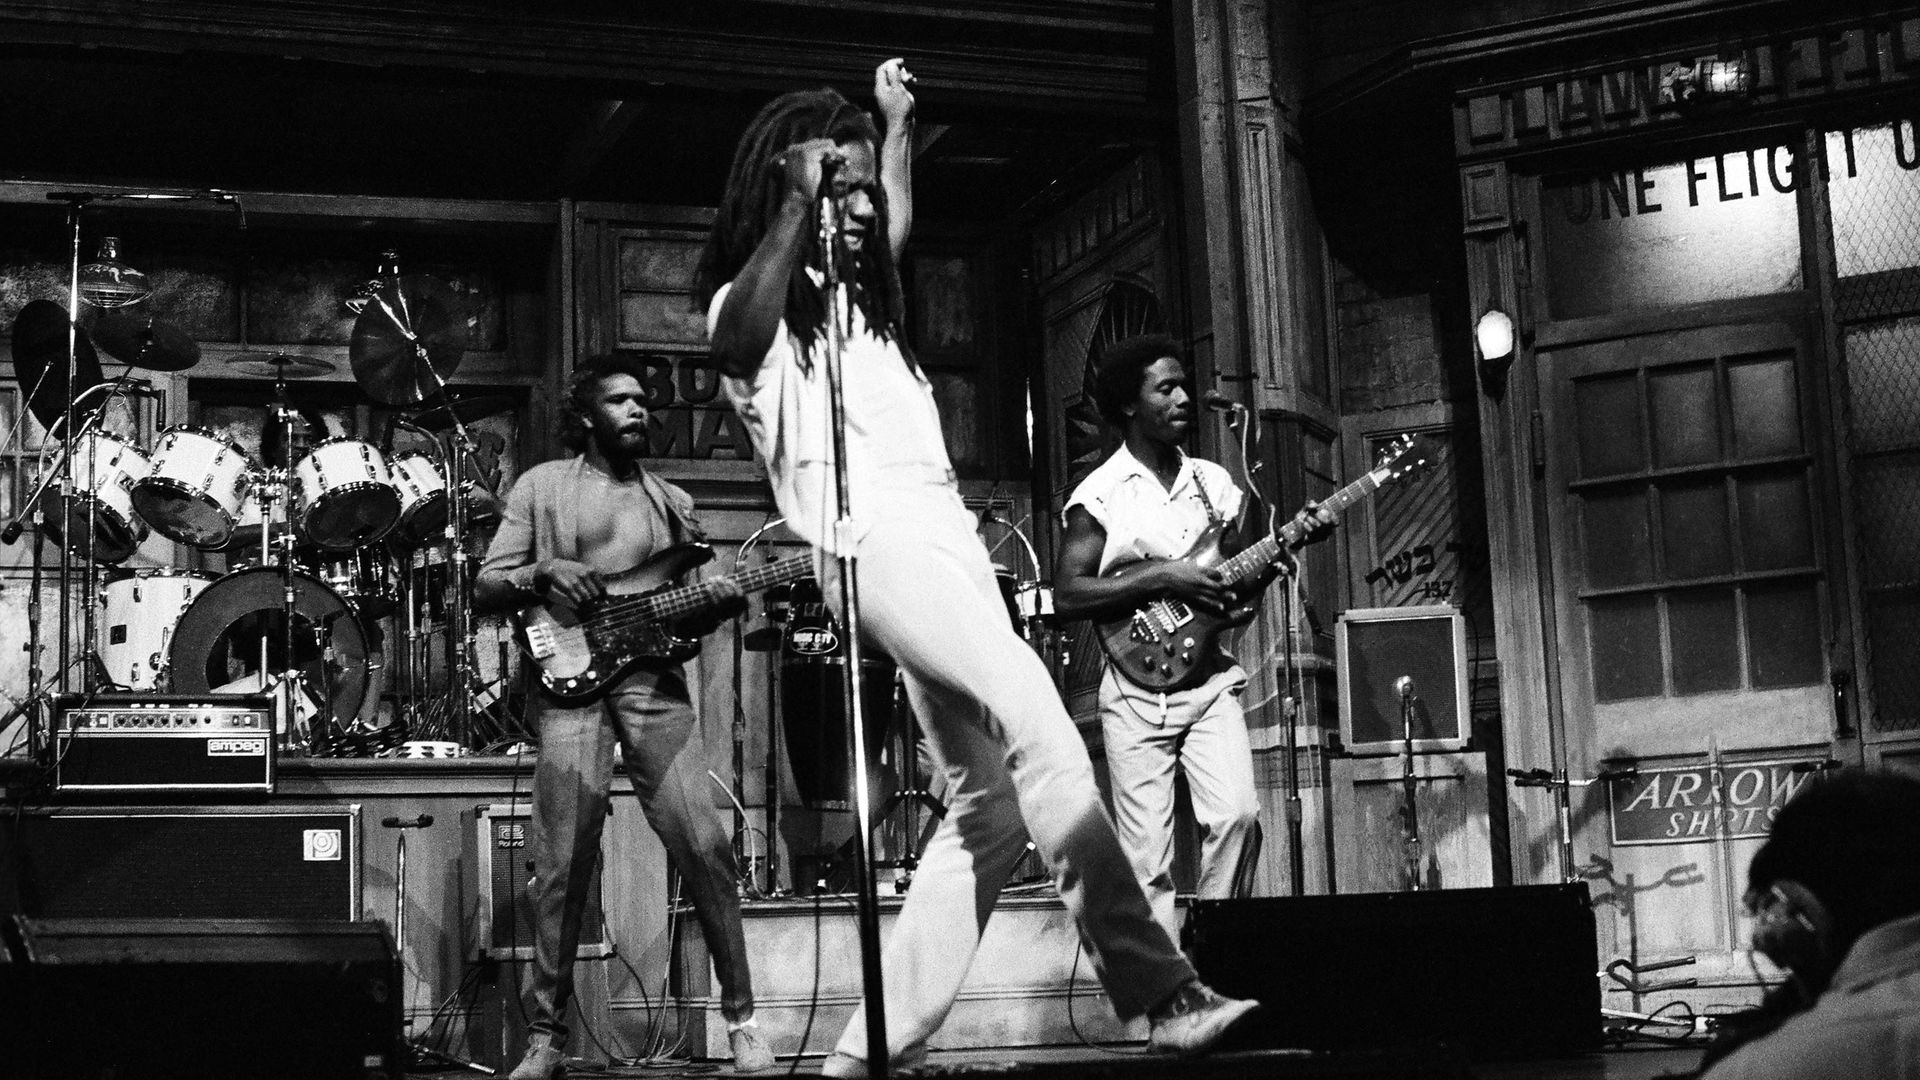 Eddy Grant performs on Saturday Night Live, in 1983 - Credit: NBCU Photo Bank/NBCUniversal